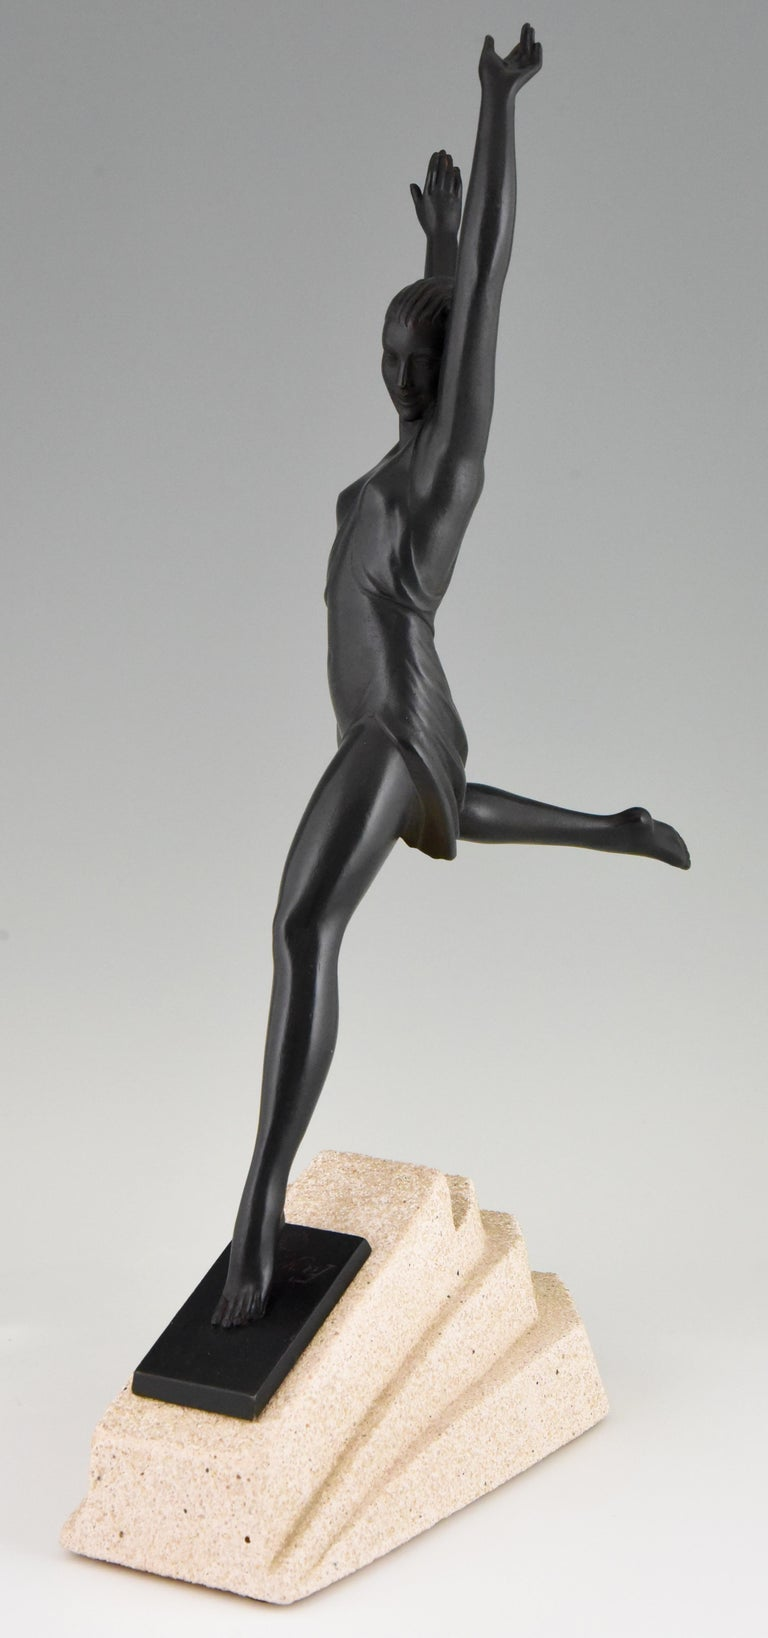 Patinated Olympe, Art Deco Sculpture of a Girl Fayral for Max Le Verrier, France, 1930